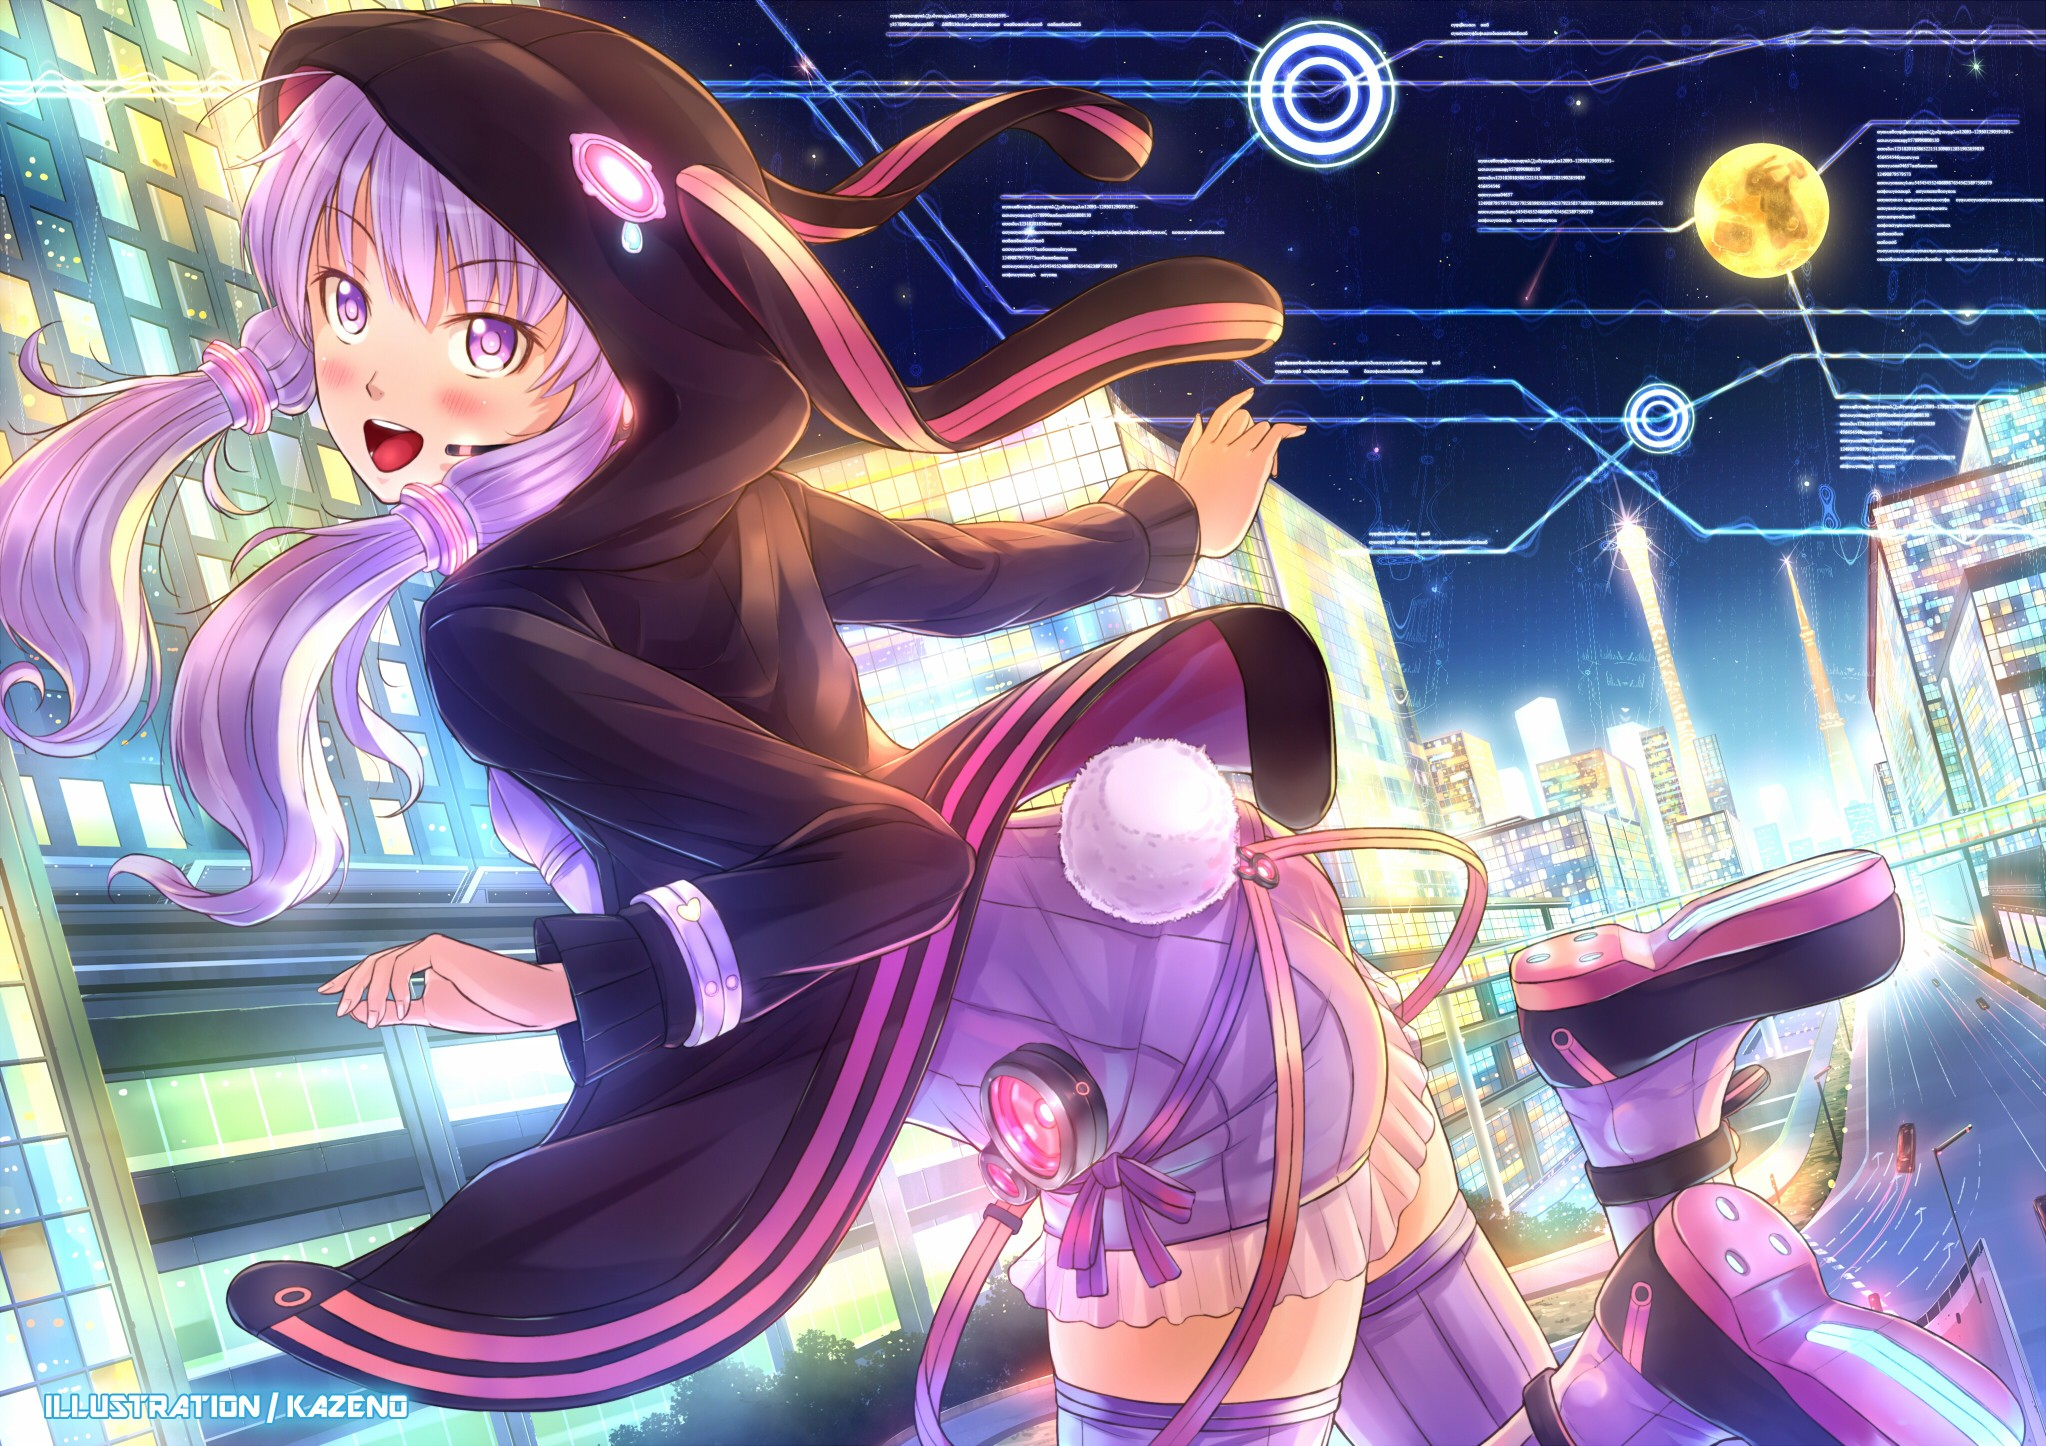 Tails cityscapes vocaloid night stars texts moon headset jumping buildings bunny girls purple hair animal ears